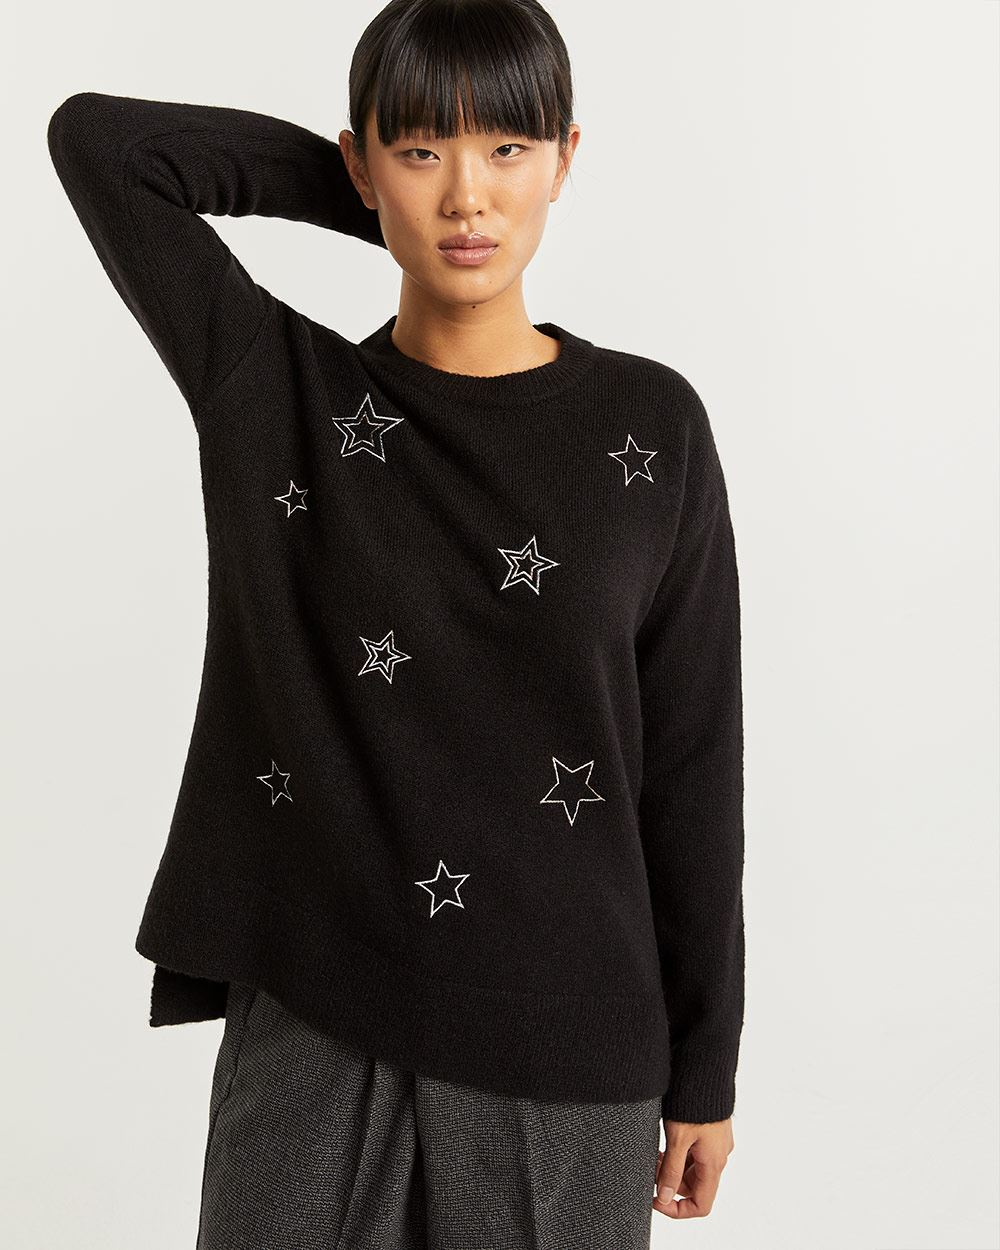 Star Embroidery Sweater